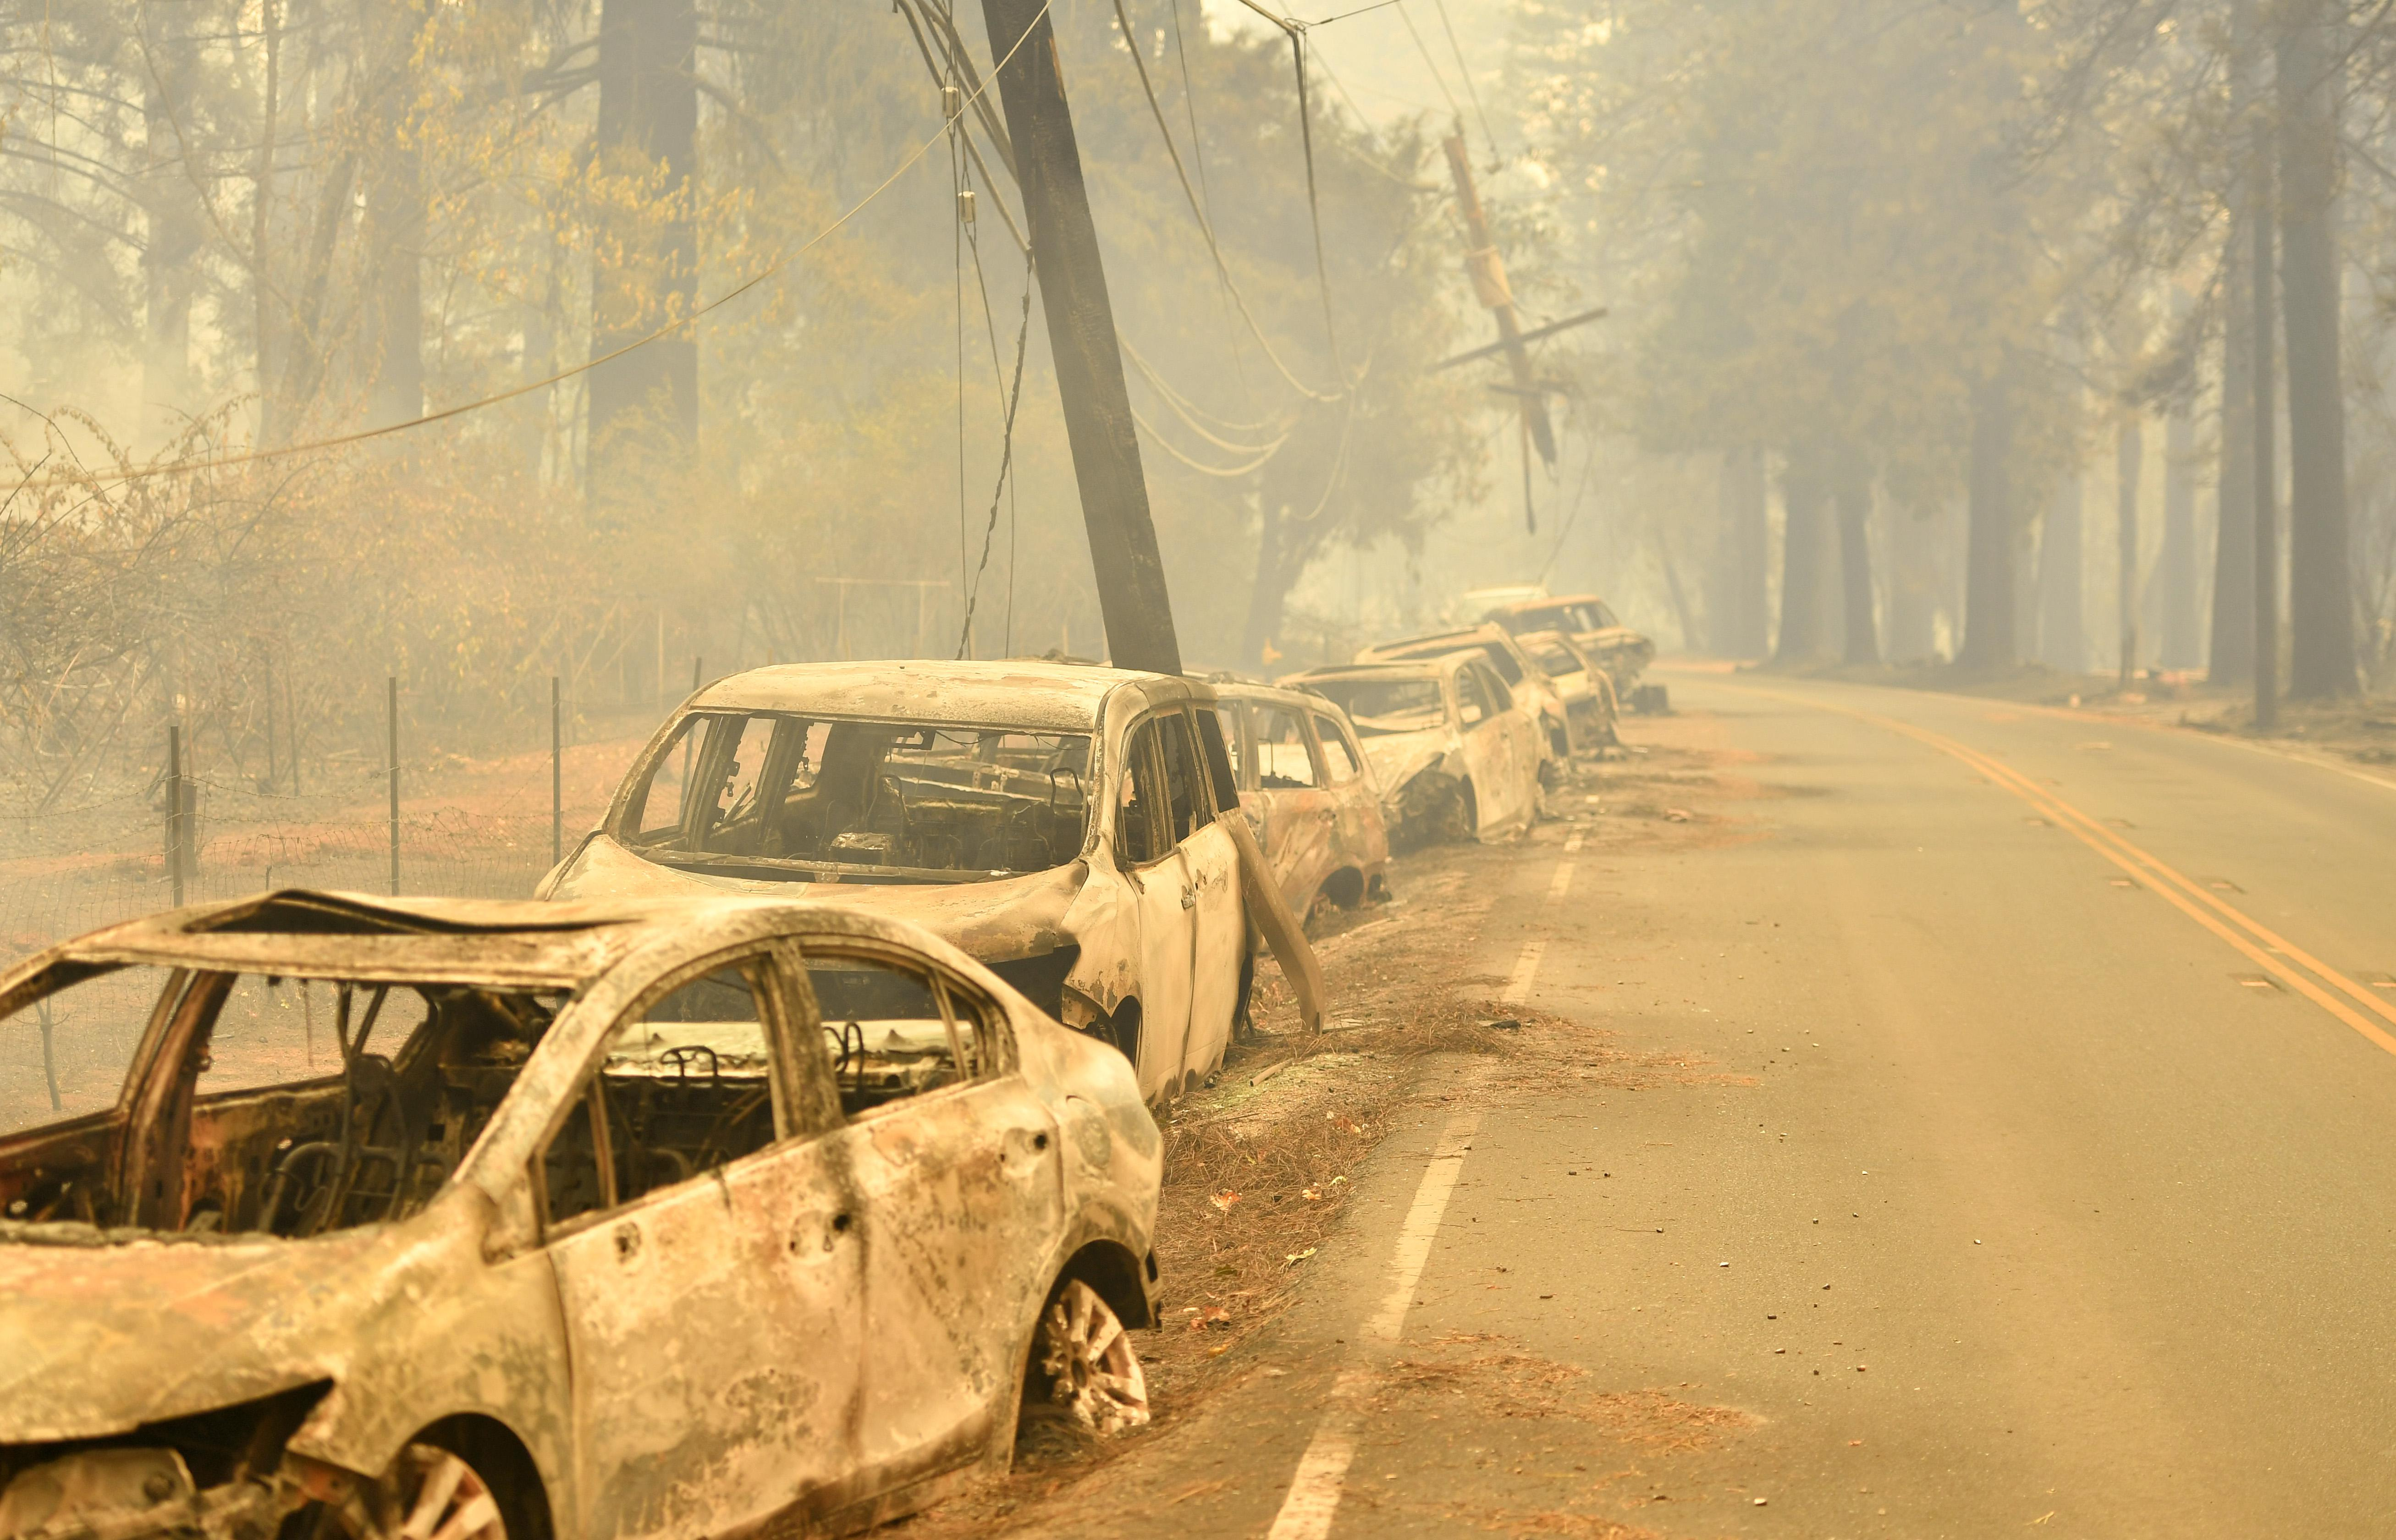 Burned vehicles on the side of a road ravaged by wildfire.